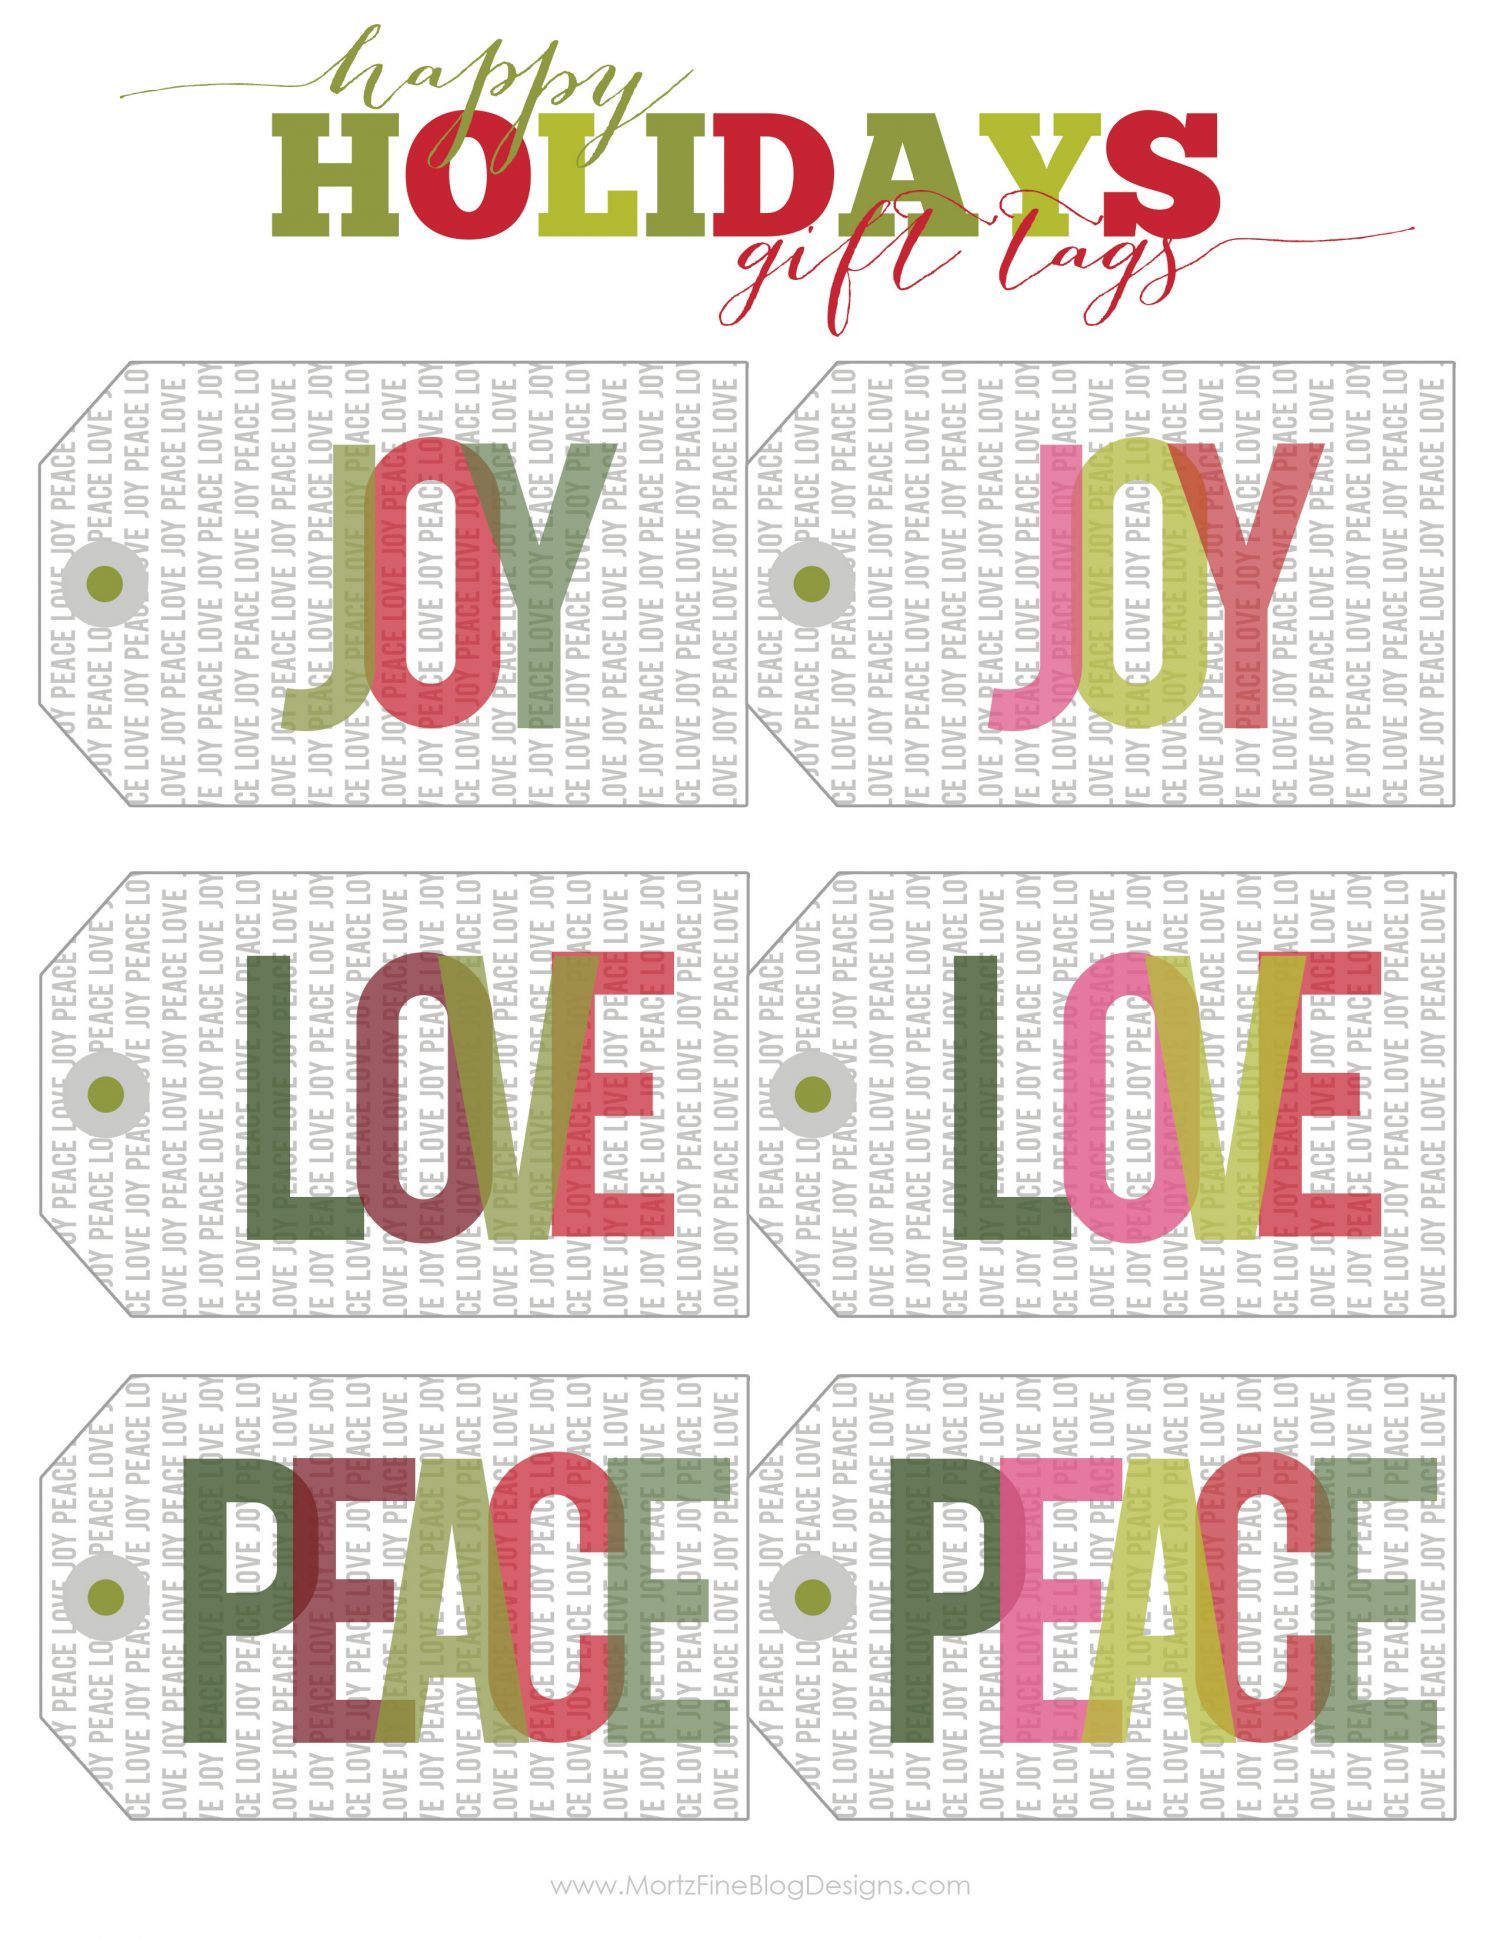 This is a picture of Impeccable Holiday Gift Tags Printable